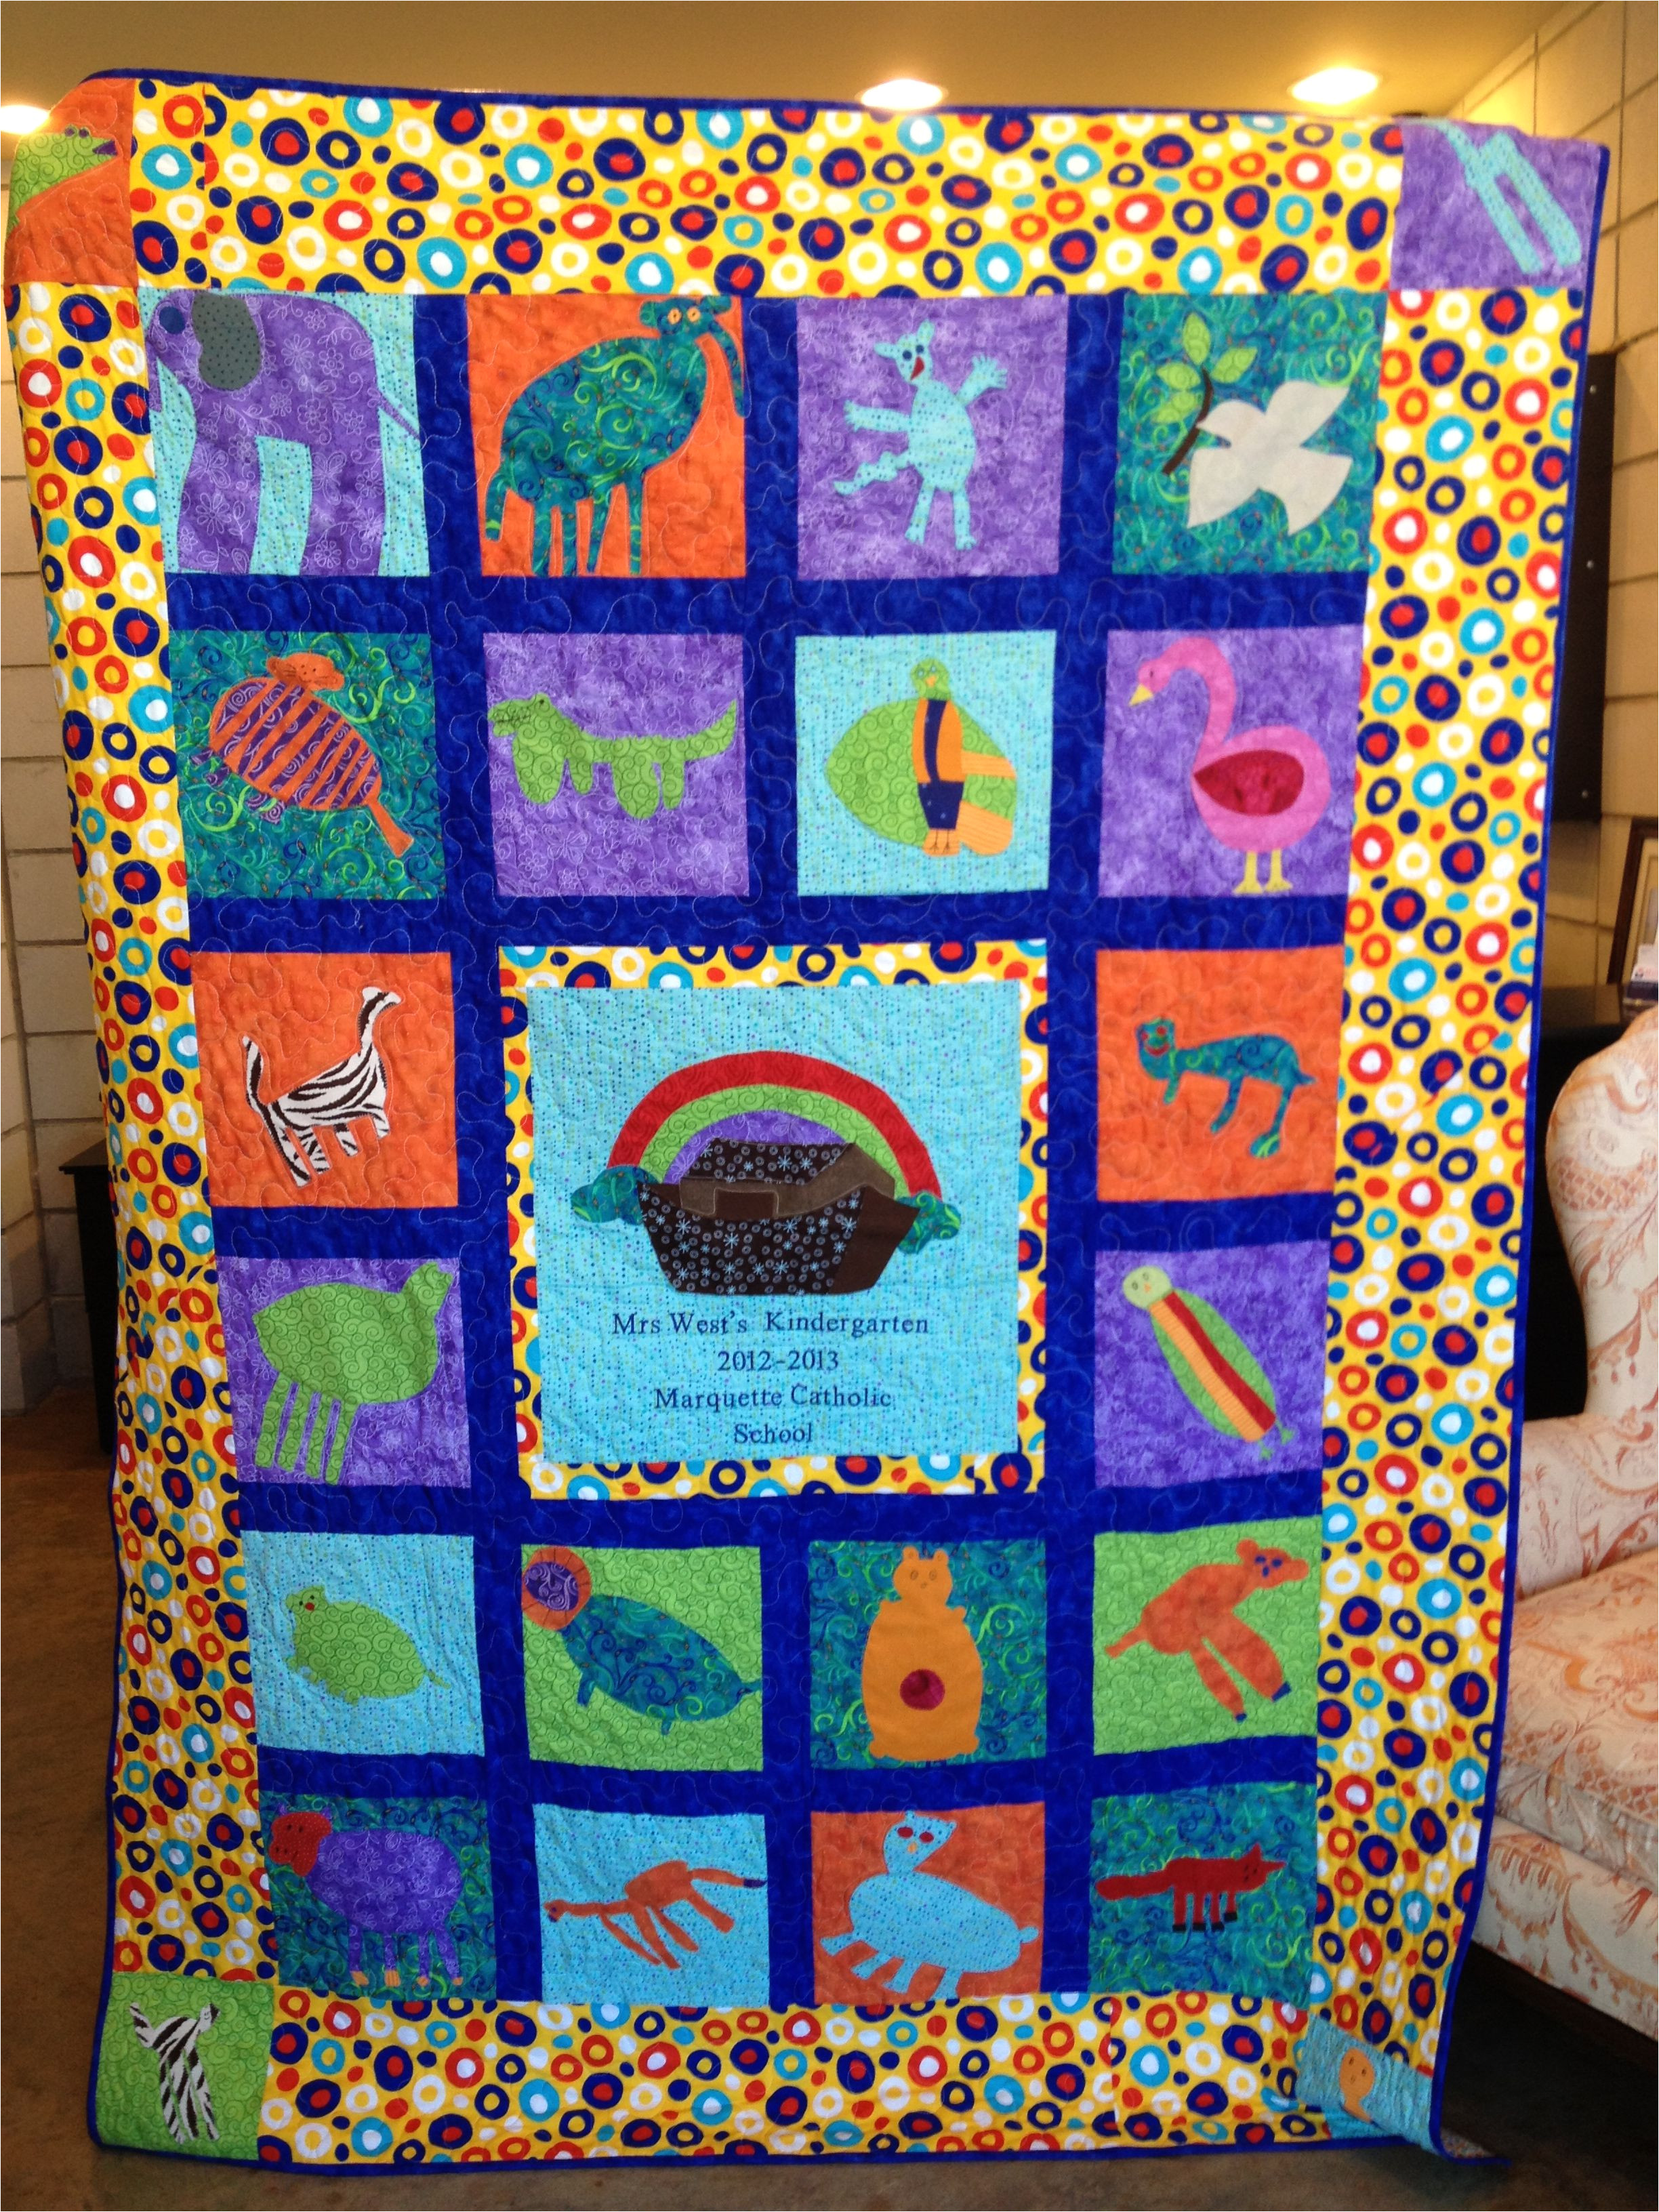 noah s ark quilt for the kindergarten class auction project each child draws a different animal which is cut out of cloth and surrounds the ark